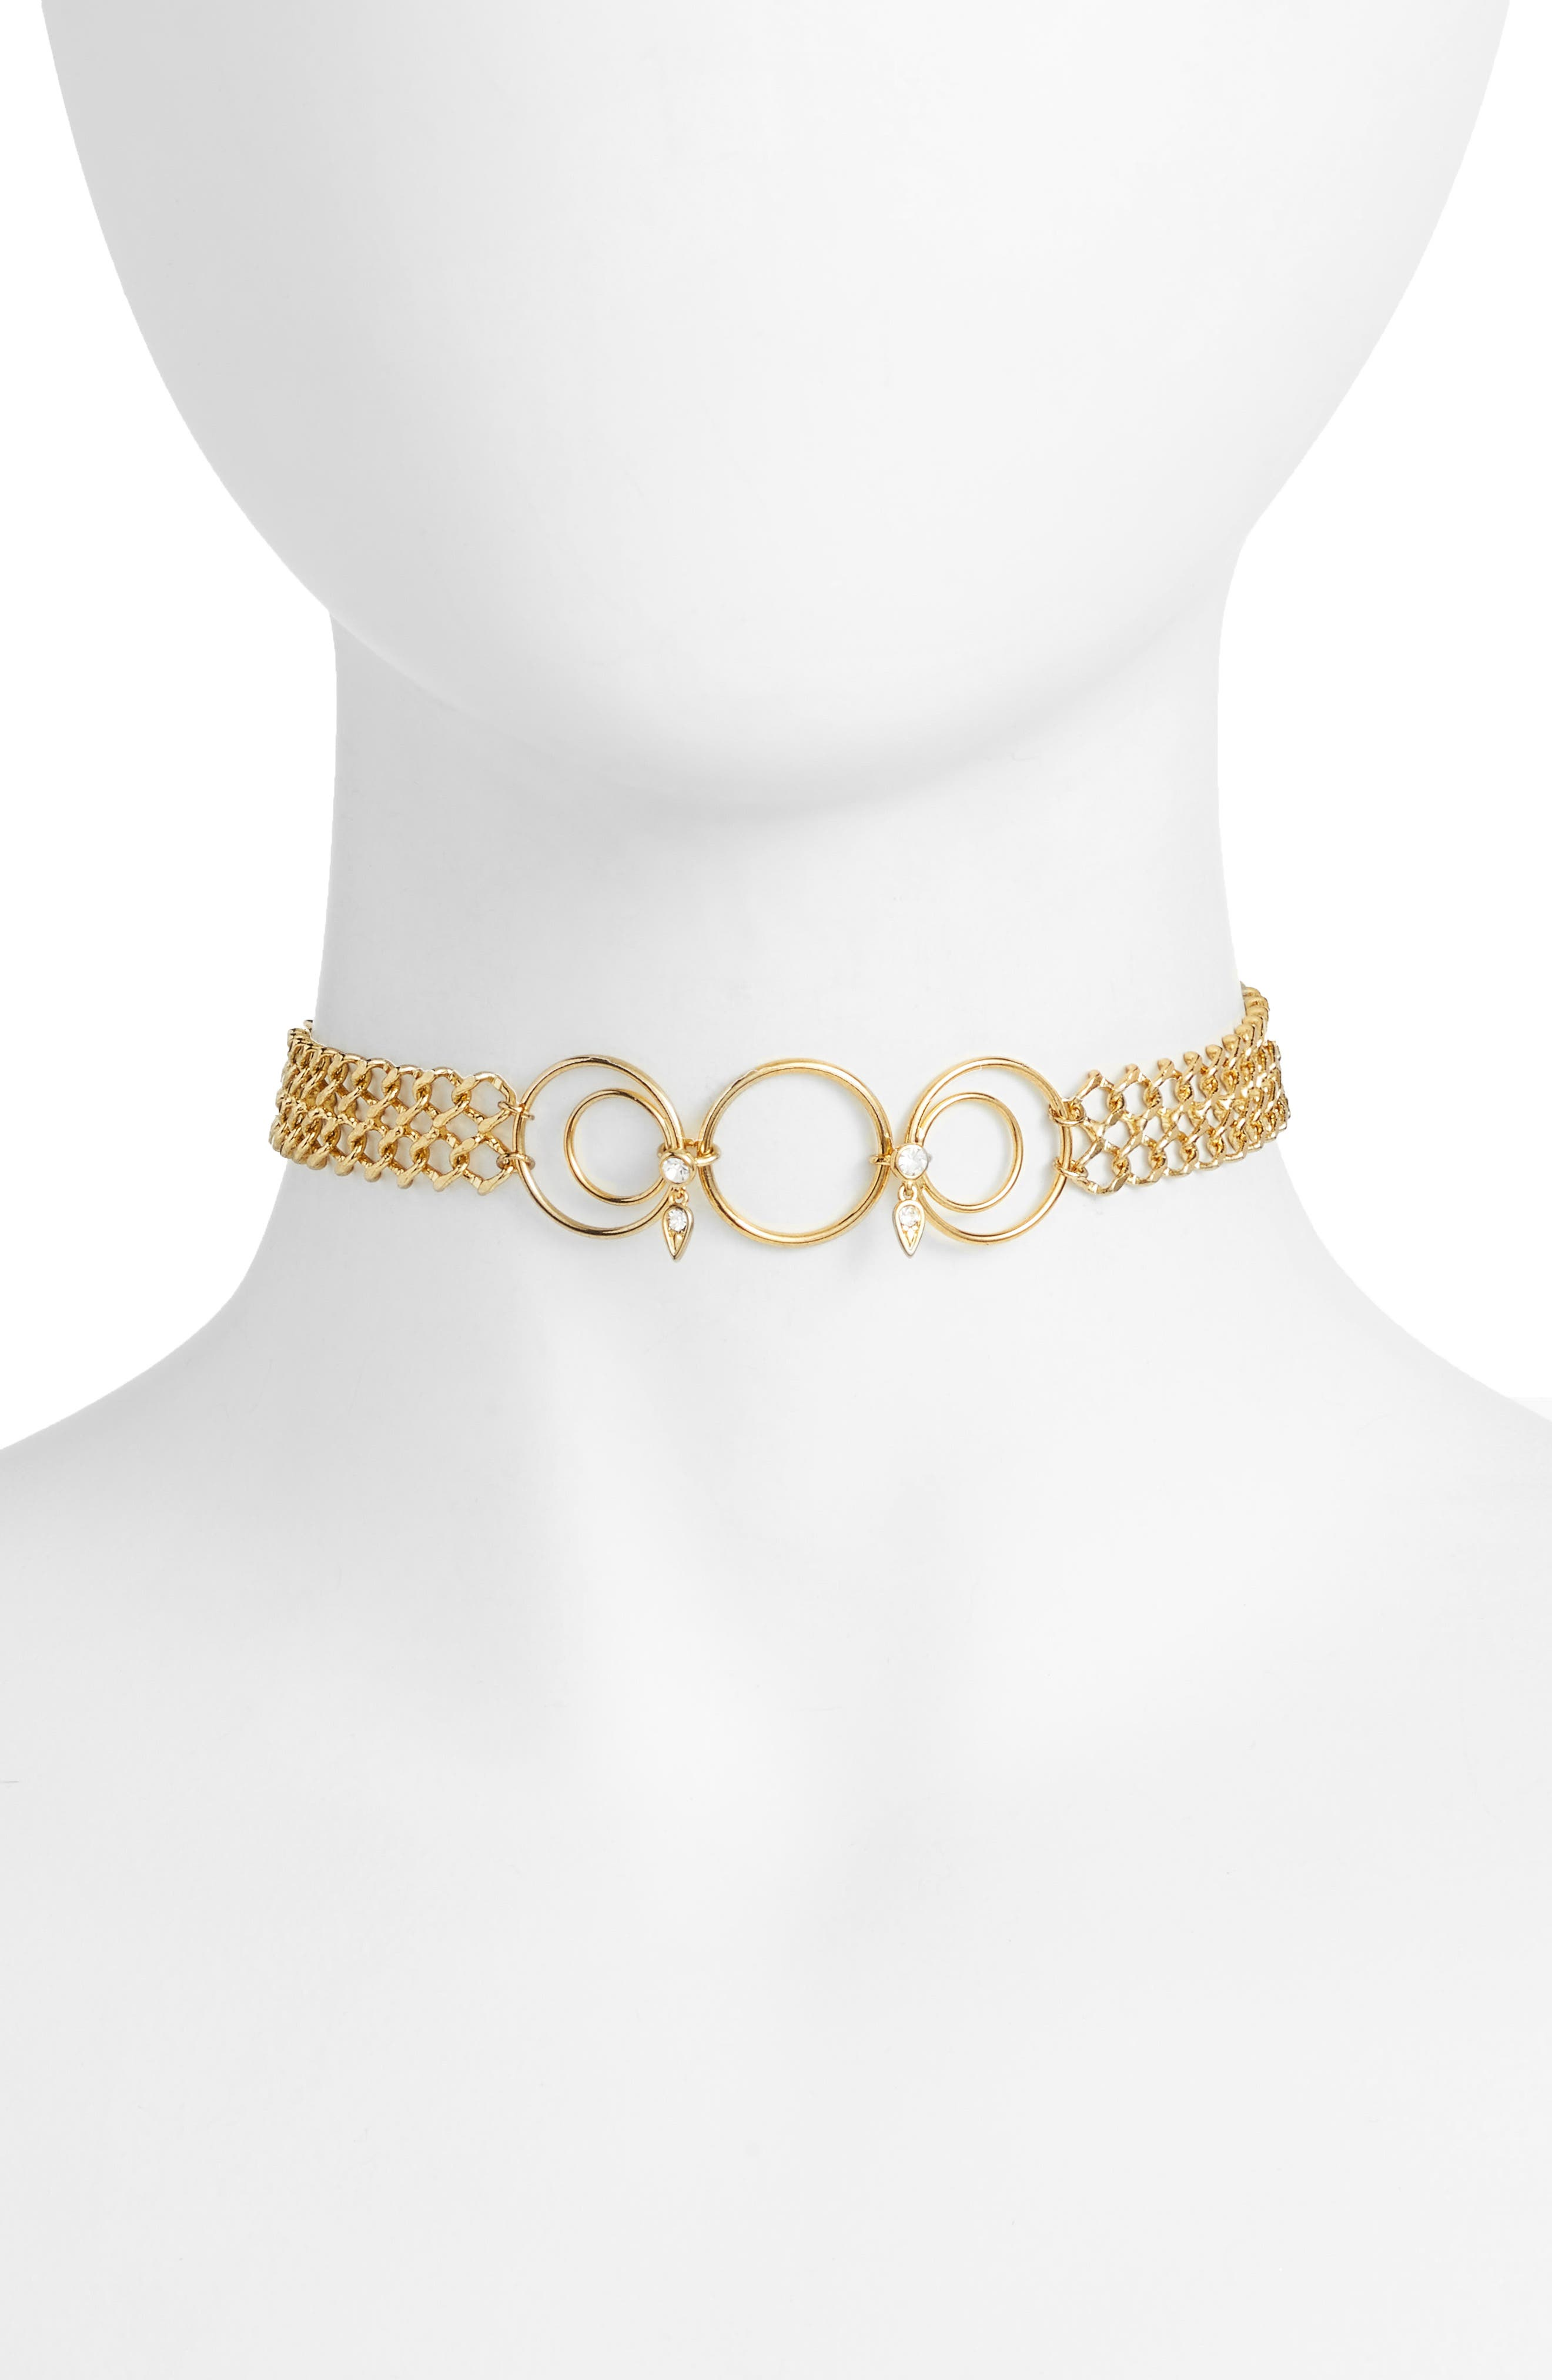 Alternate Image 1 Selected - Luv AJ Eclipse Choker Necklace